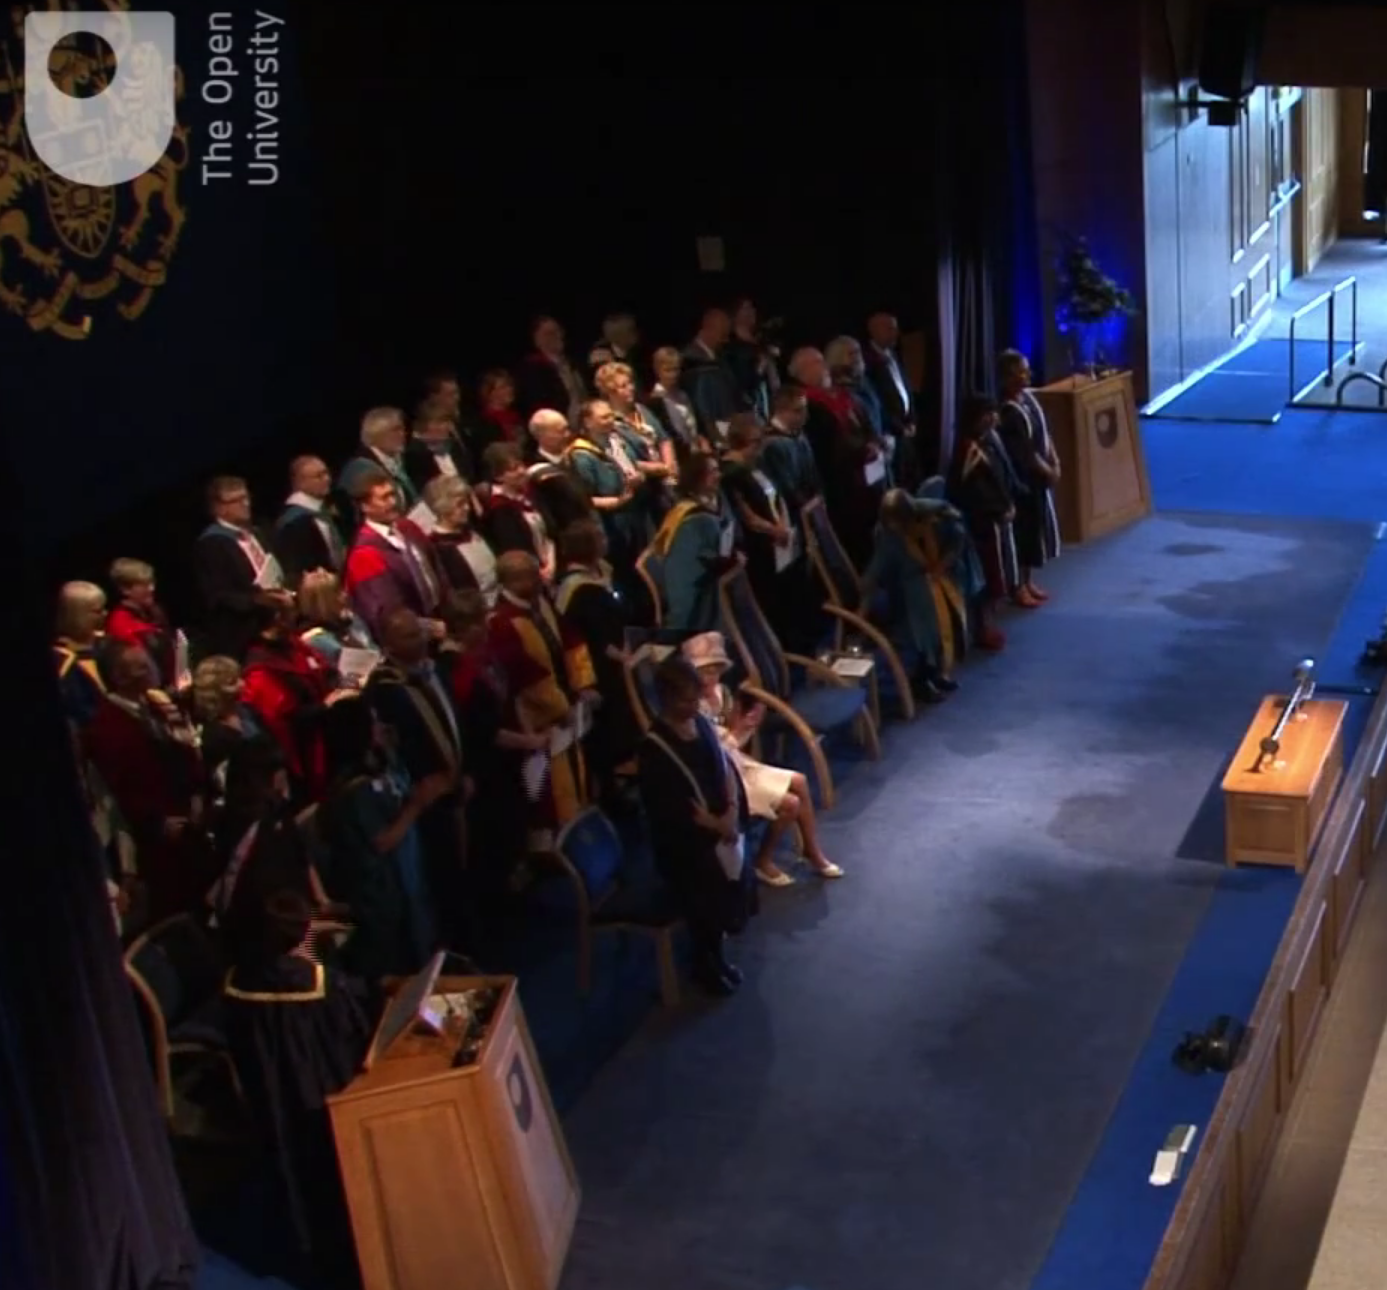 On stage at the degree ceremony torquay